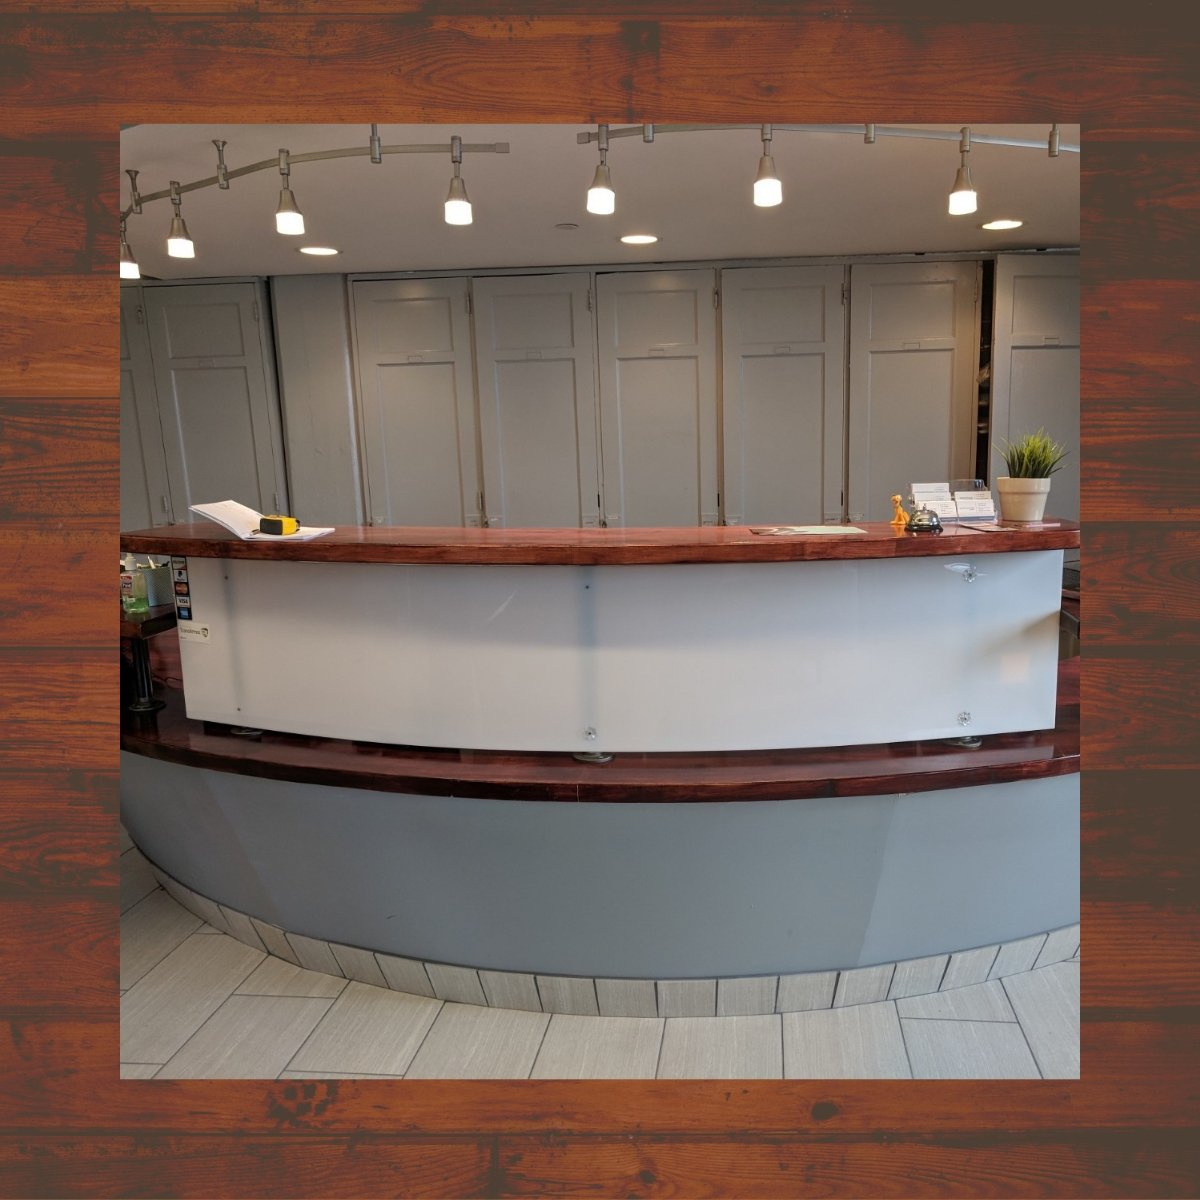 Front desk before creative install at LWS